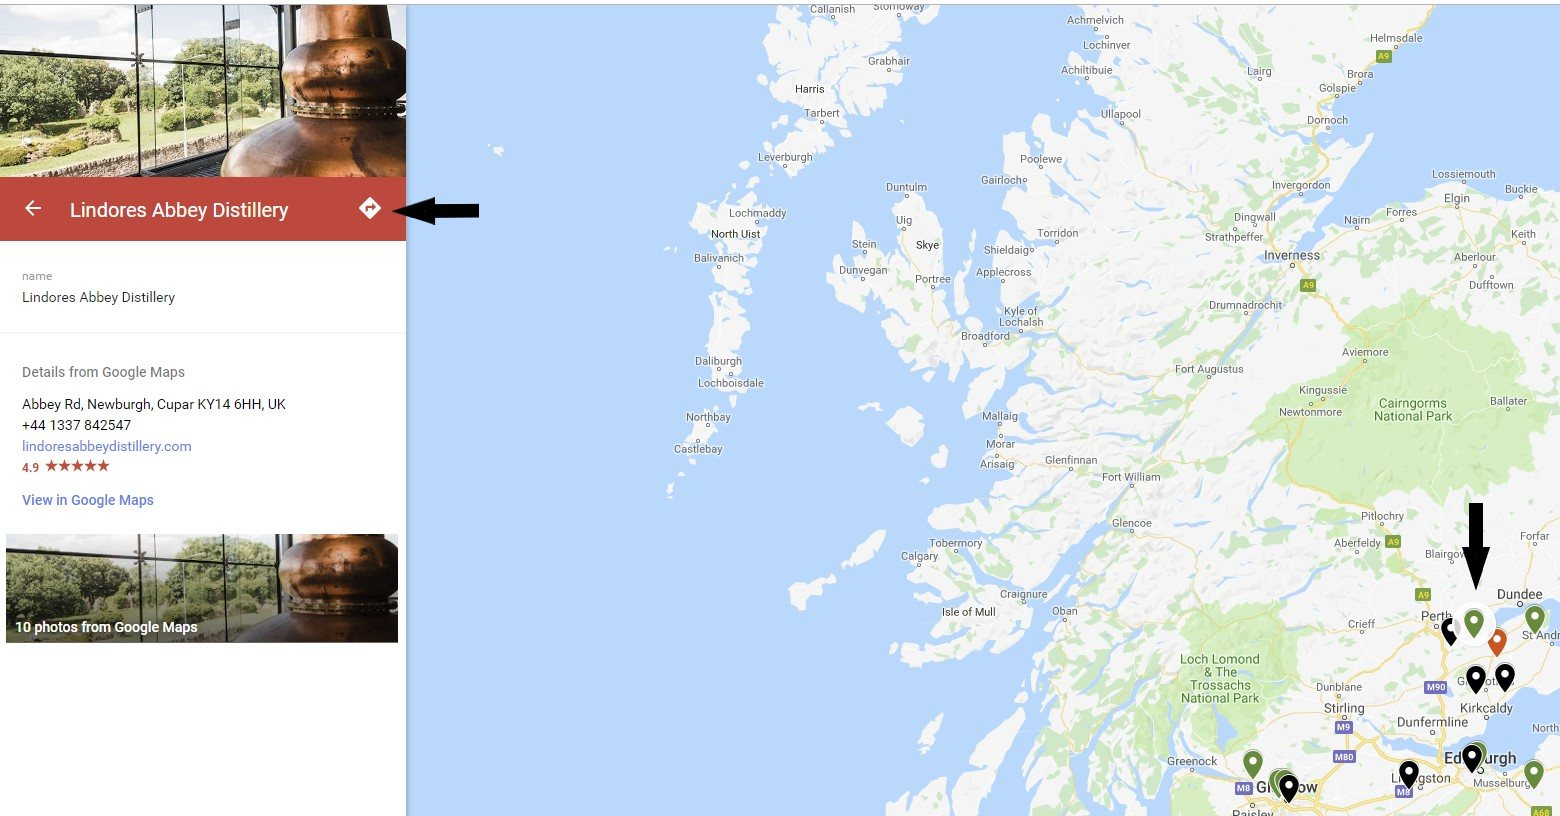 Scotland Whisky Distillery Map | Wandering Spirits Global on britanica on a map, denmark on a map, iberian peninsula on a map, republic of south africa on a map, egypt on a map, highland on a map, scotland in the world, slovenia on a map, portugual on a map, scotland on world map, netherlands on a map, greece on a map, united kingdom on a map, portugal on a map, britain on a map, wales on a map, alps on a map, germany on a map, russia on a map, pyrenees on a map,